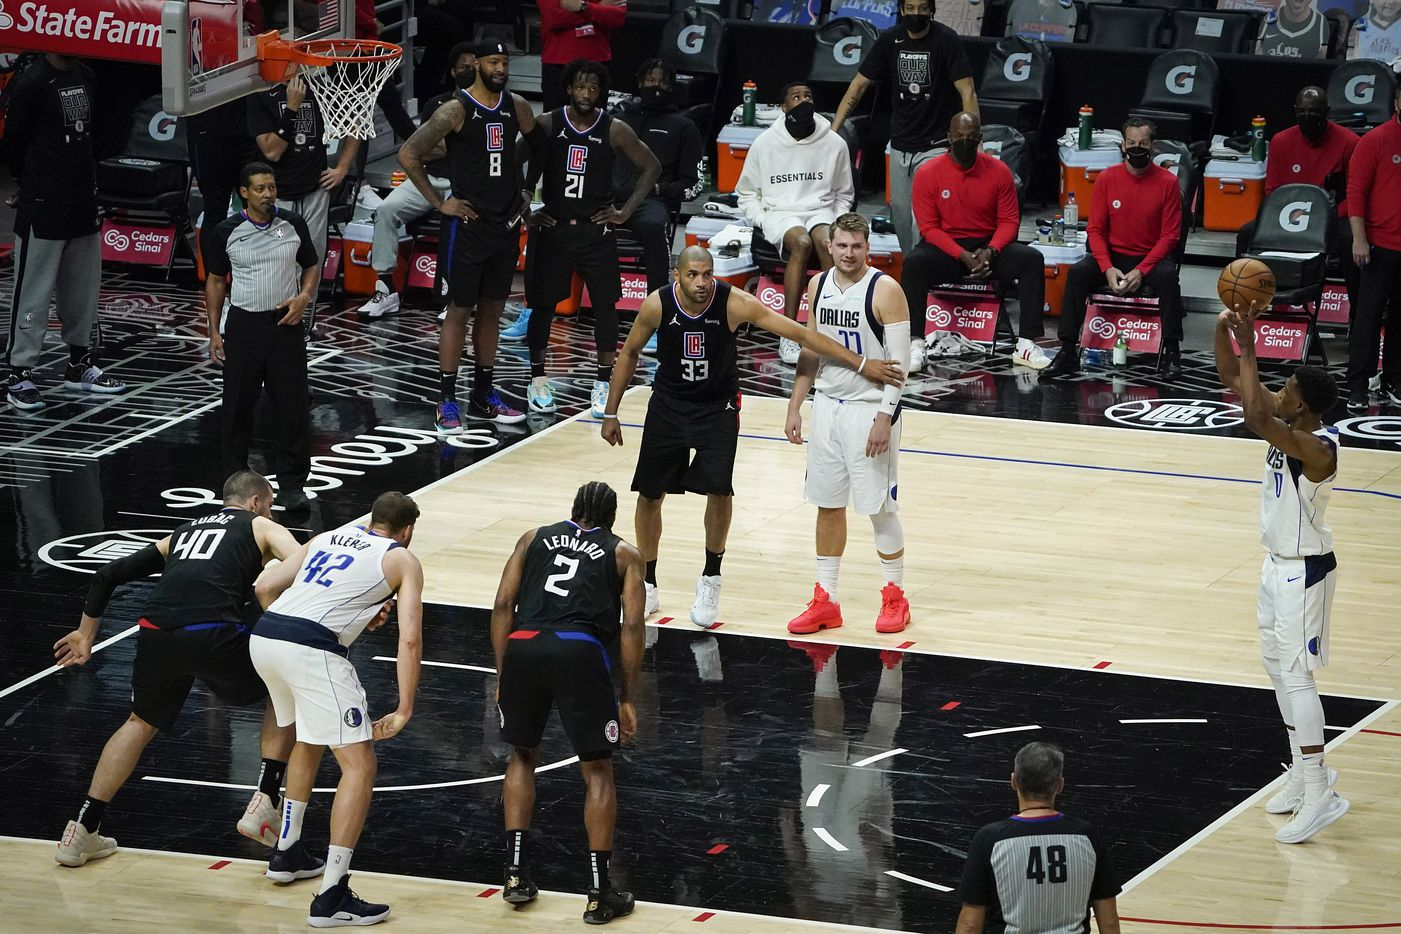 Dallas Mavericks guard Josh Richardson (0) shoots a free throw during the second half of an NBA playoff basketball game against the LA Clippers at Staples Center on Wednesday, May 26, 2021, in Los Angeles. The Mavericks won the game 127-121.